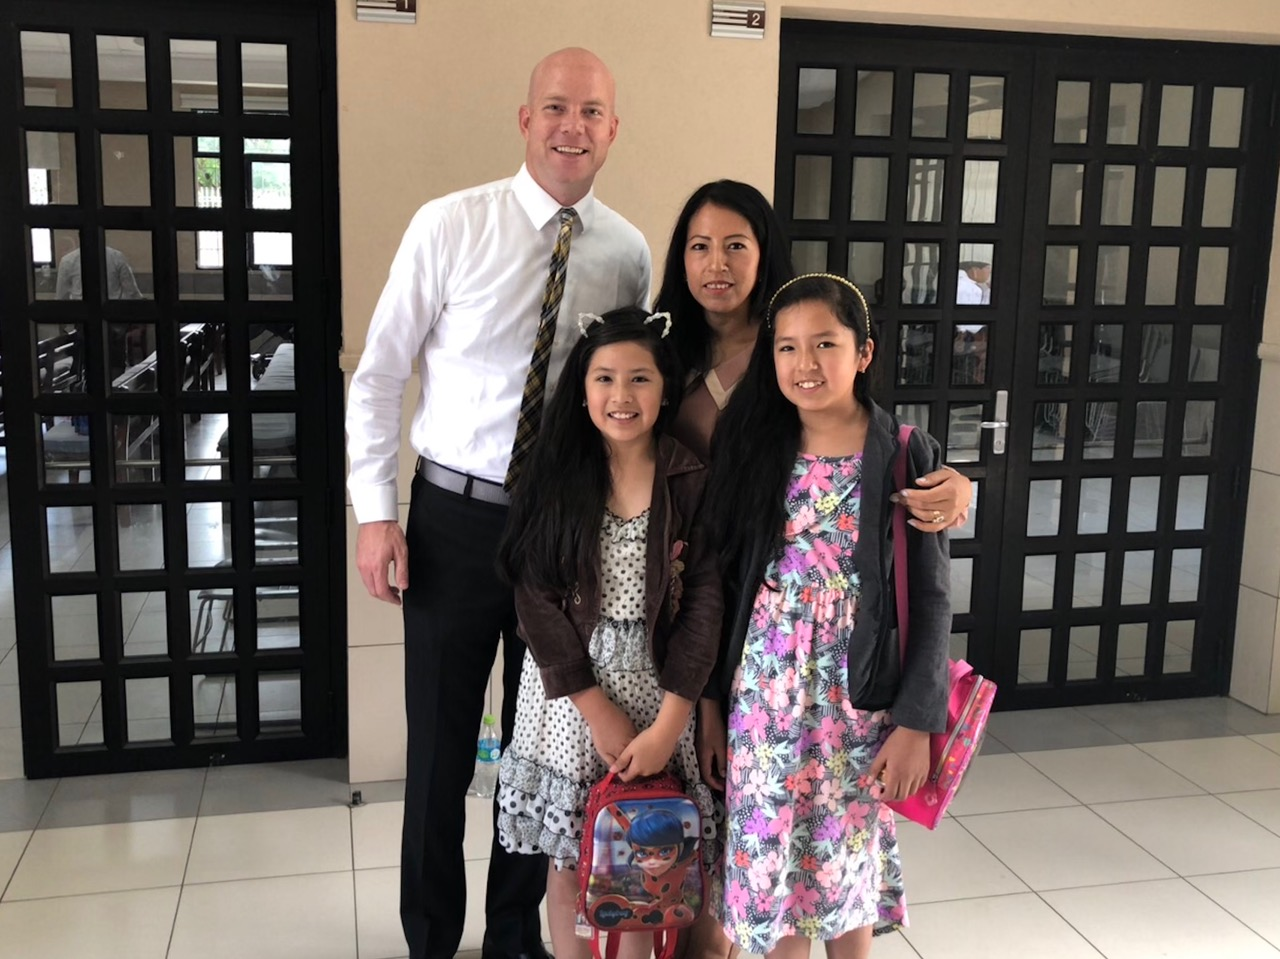 From left: Davis Smith with Ilsen and her two daughters. Ilsen is a member who Davis Smith taught and baptized while serving in Cochabamba 20 years ago. During a recent return trip to Bolivia, Smith was able to reunite with Ilsen at a local Church.